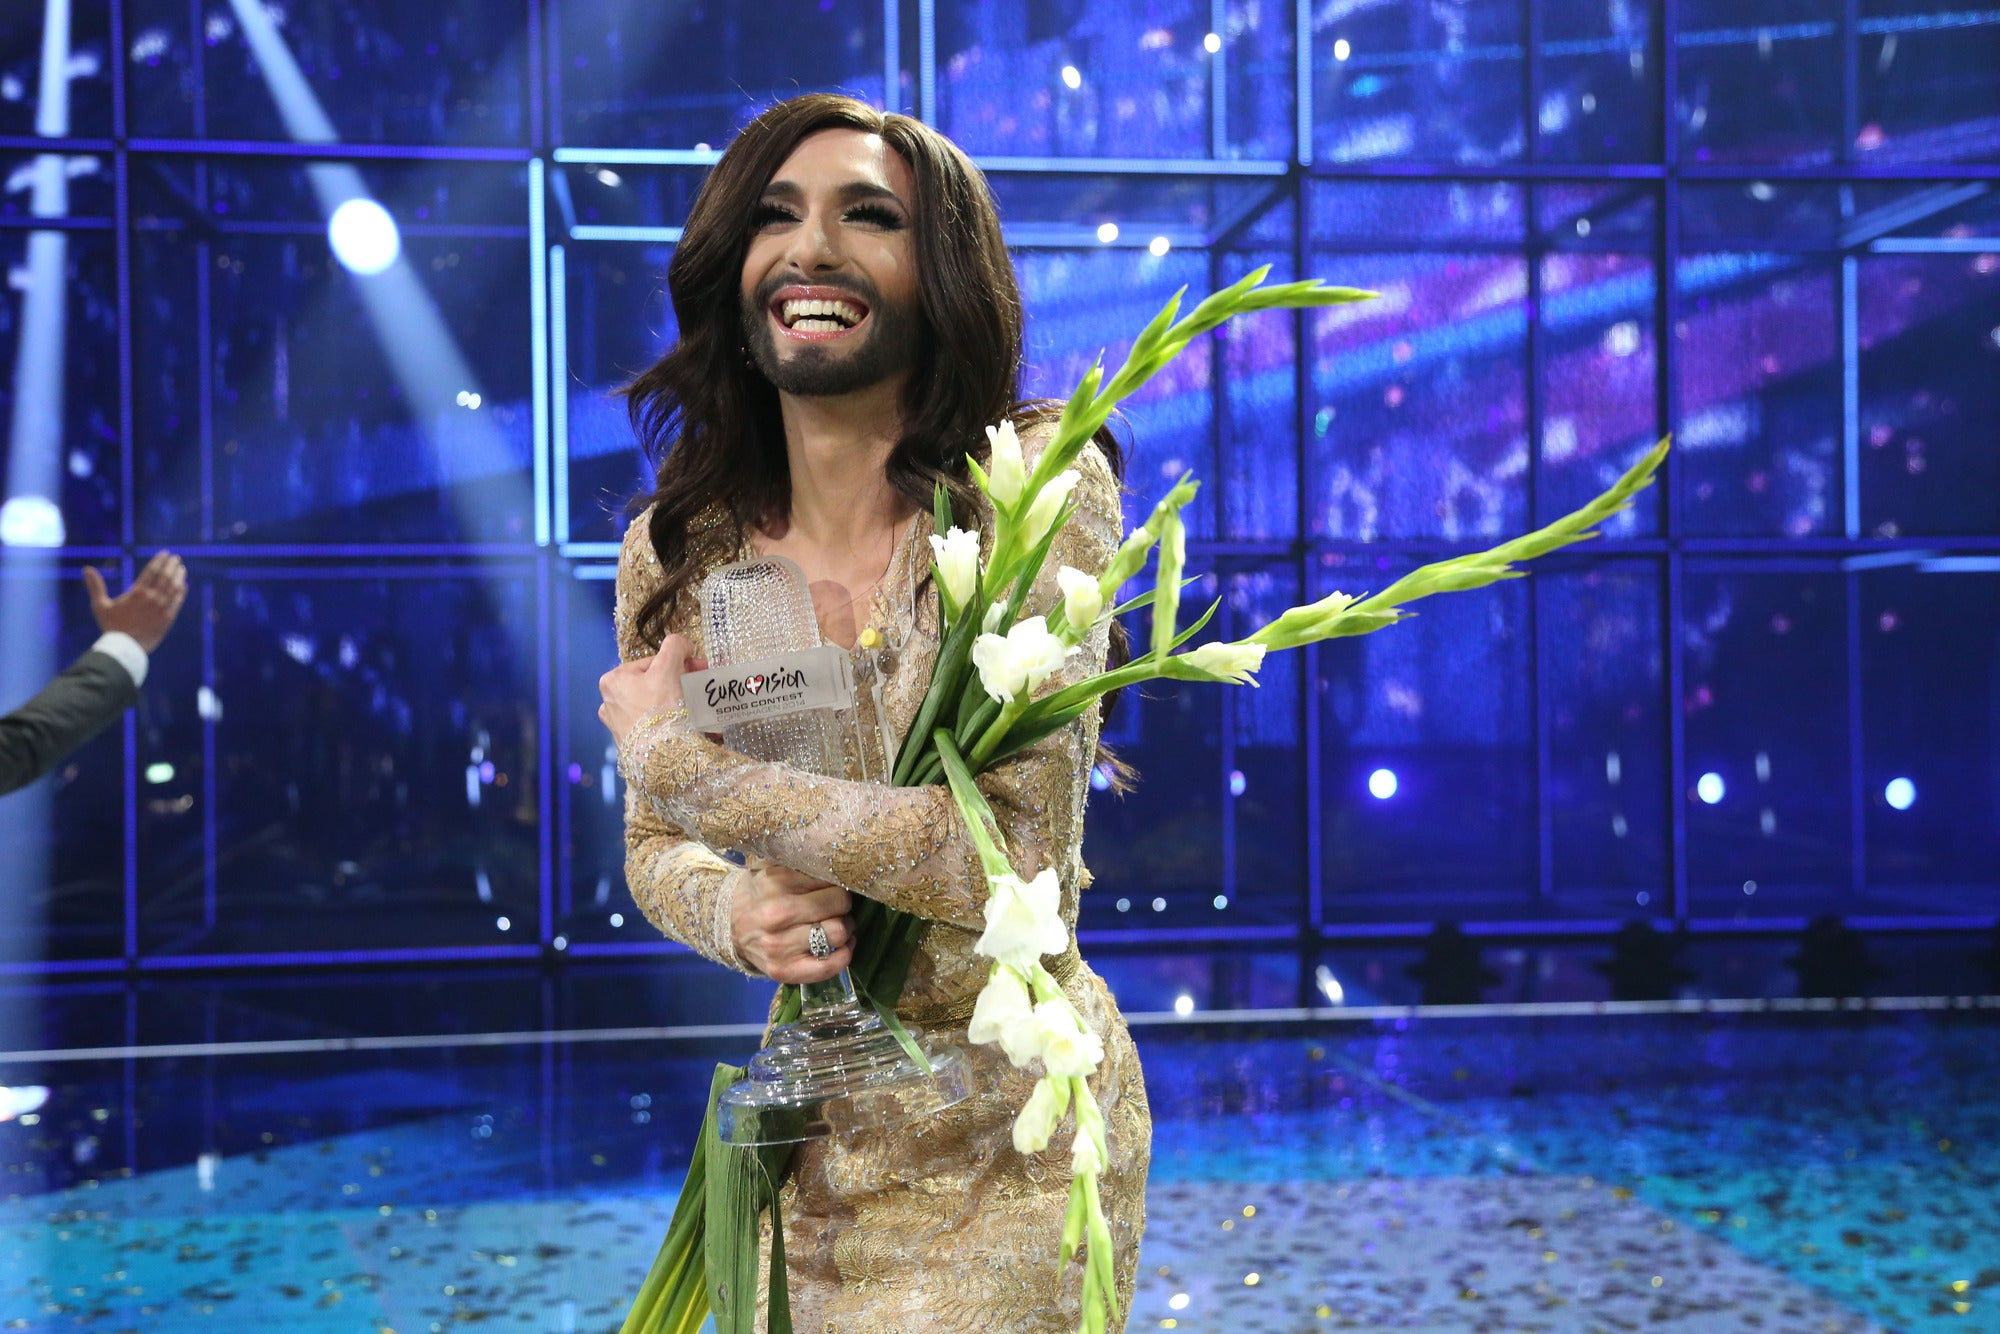 Conchita wurst and dana international in eurovision first star - Eurovision 2016 The Most Controversial Acts Of All Time From Dana International To Those Raunchy Polish Milkmaids